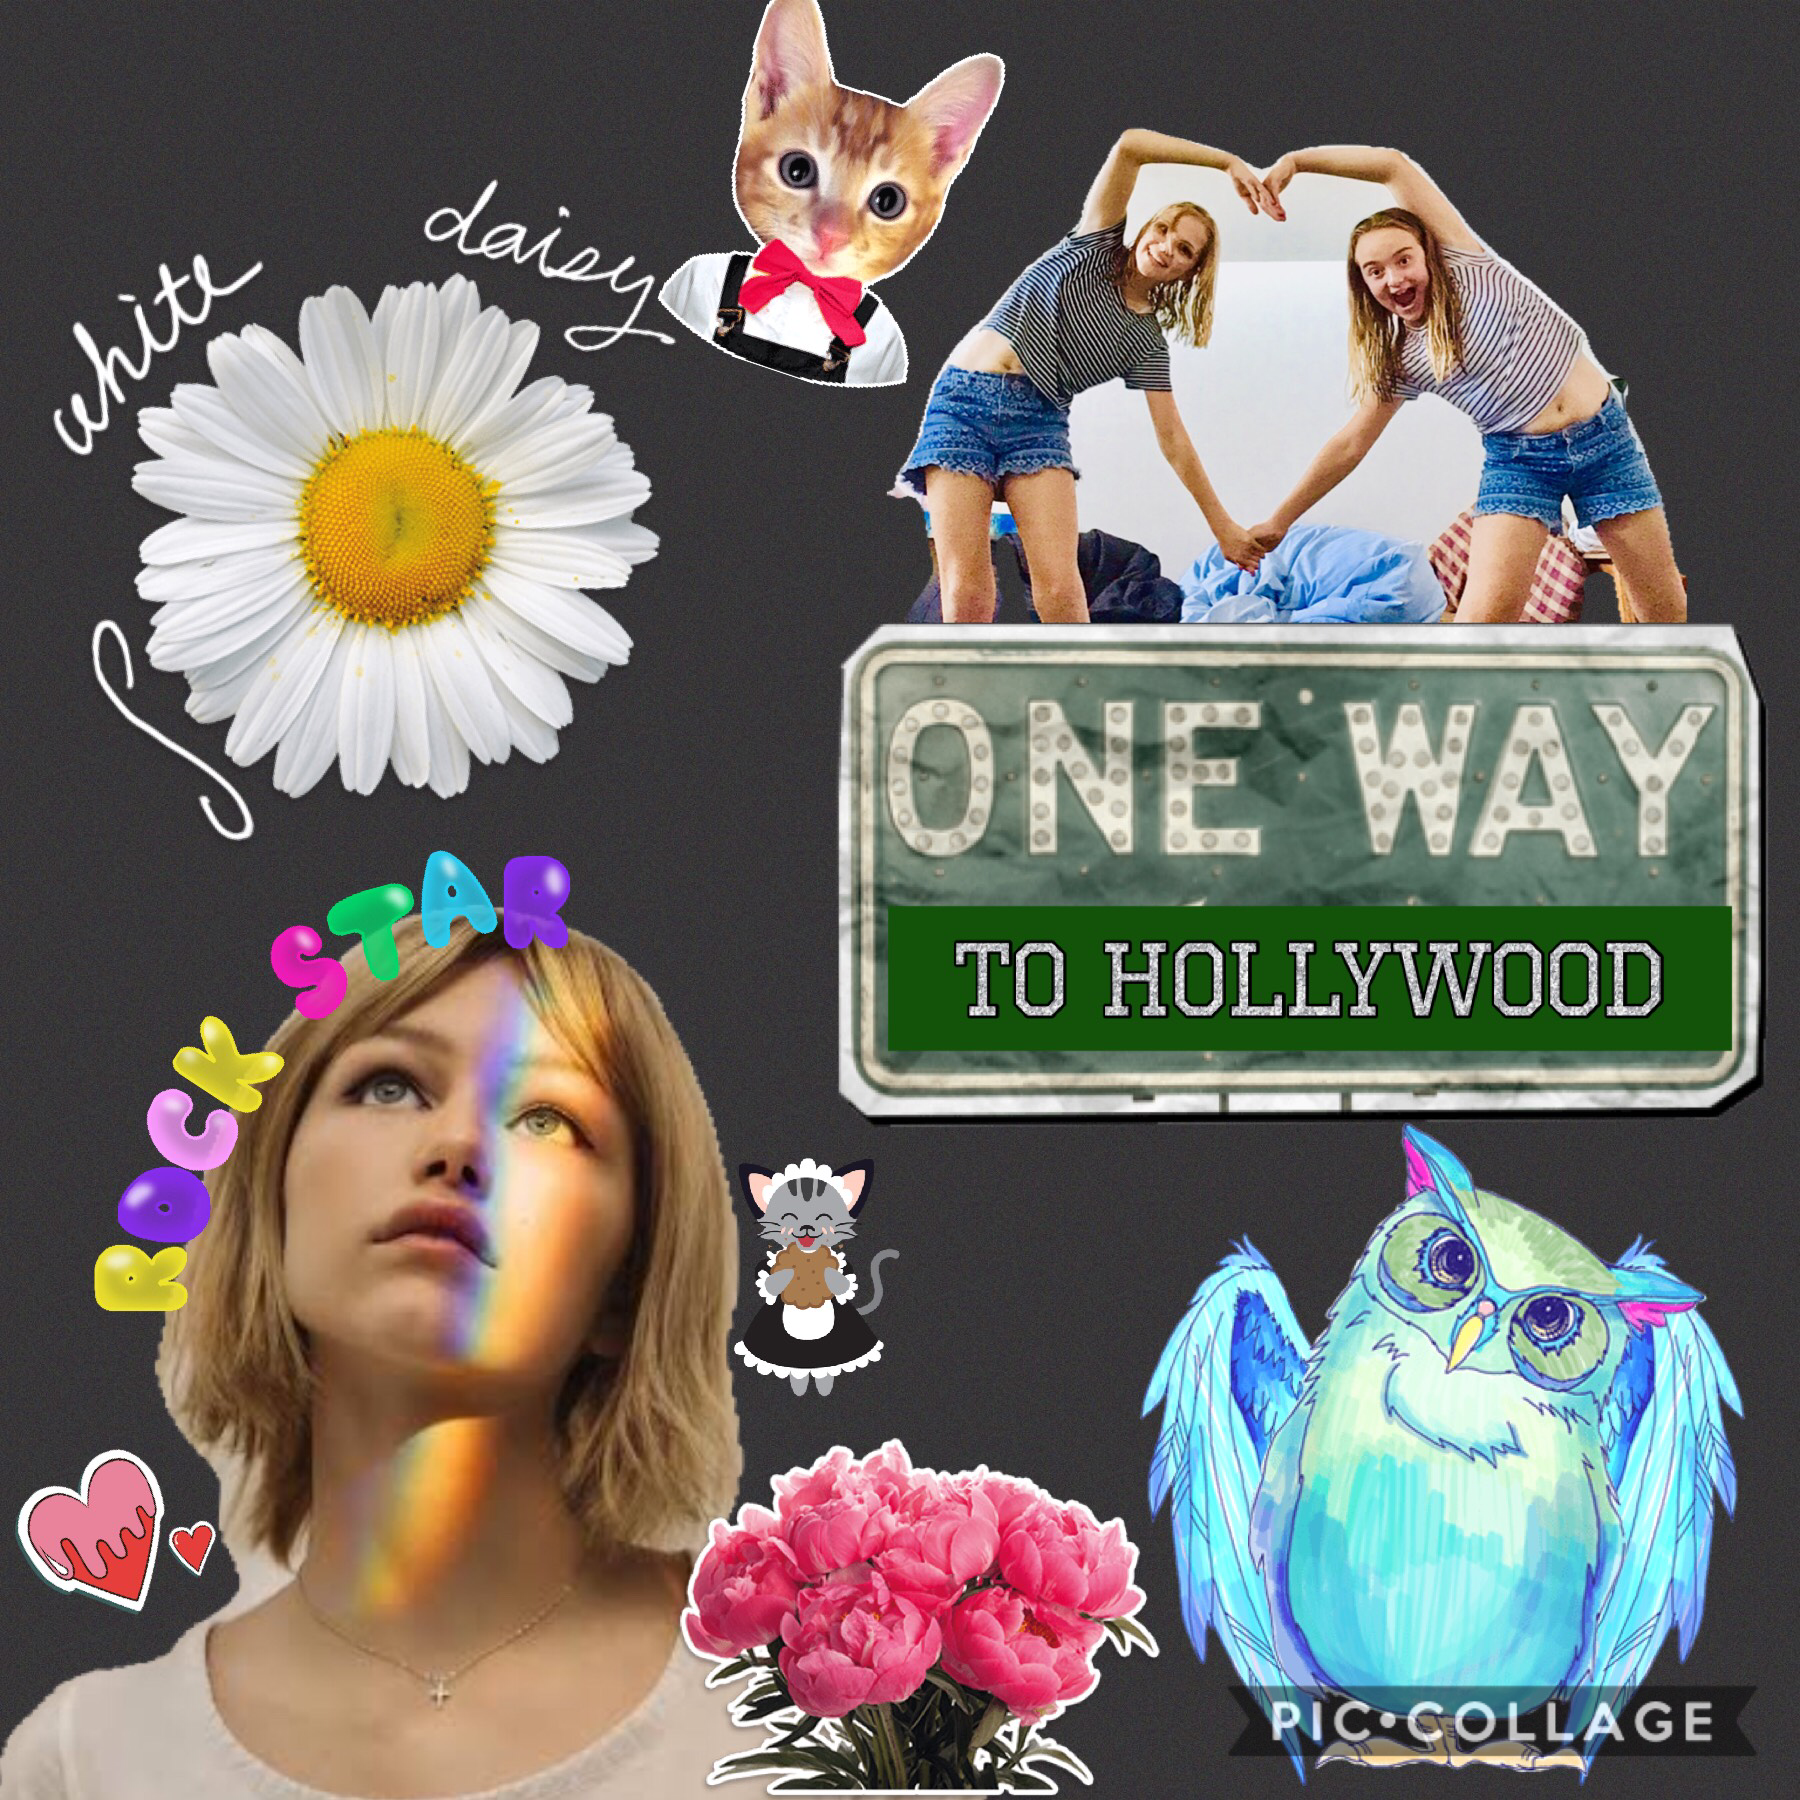 Collage by lucy192837465